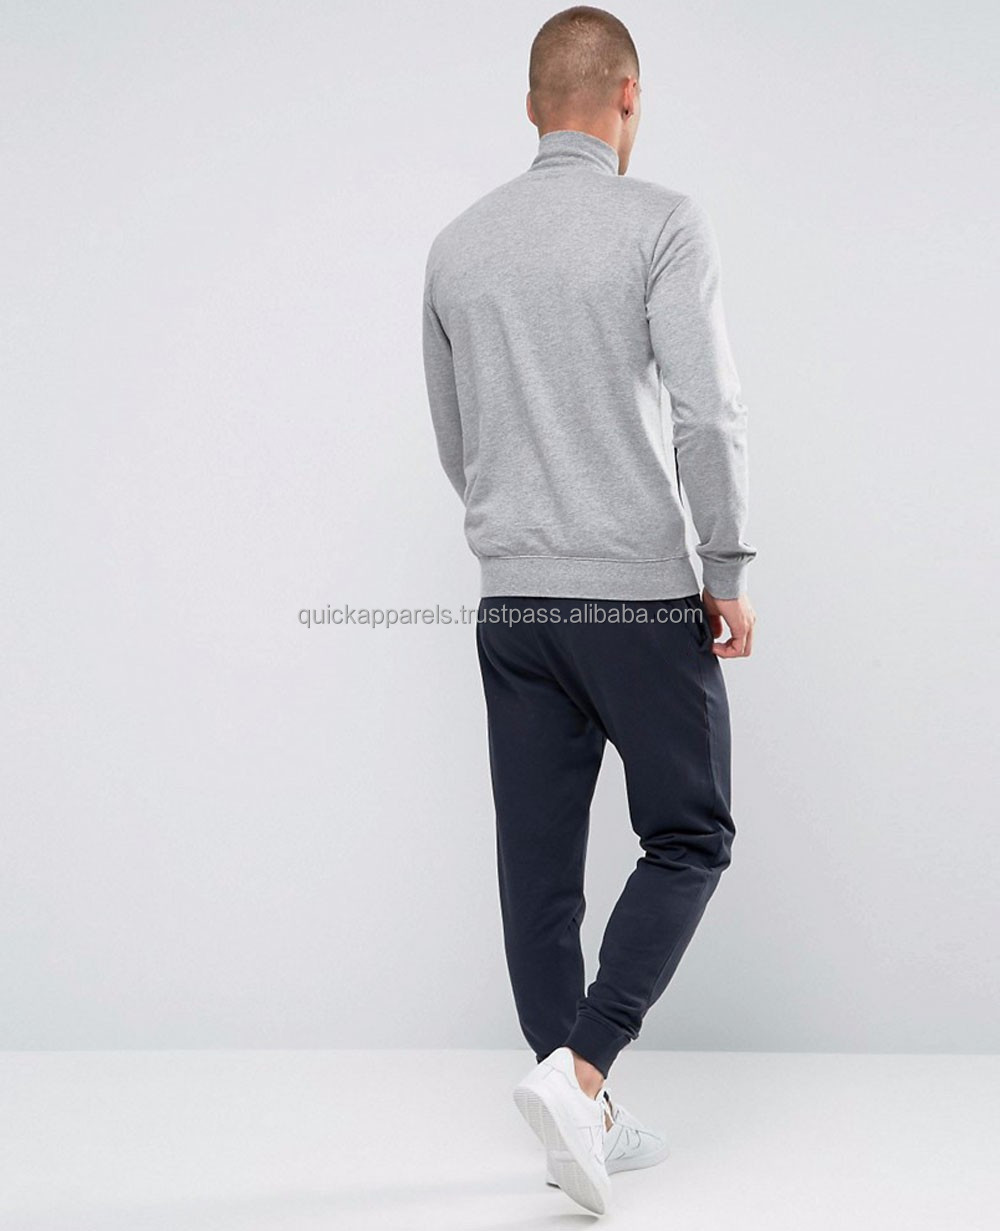 Wholesale Custom Track Pants Men Skinny Leg Jogger Sweatpants With Tapered Bottoms